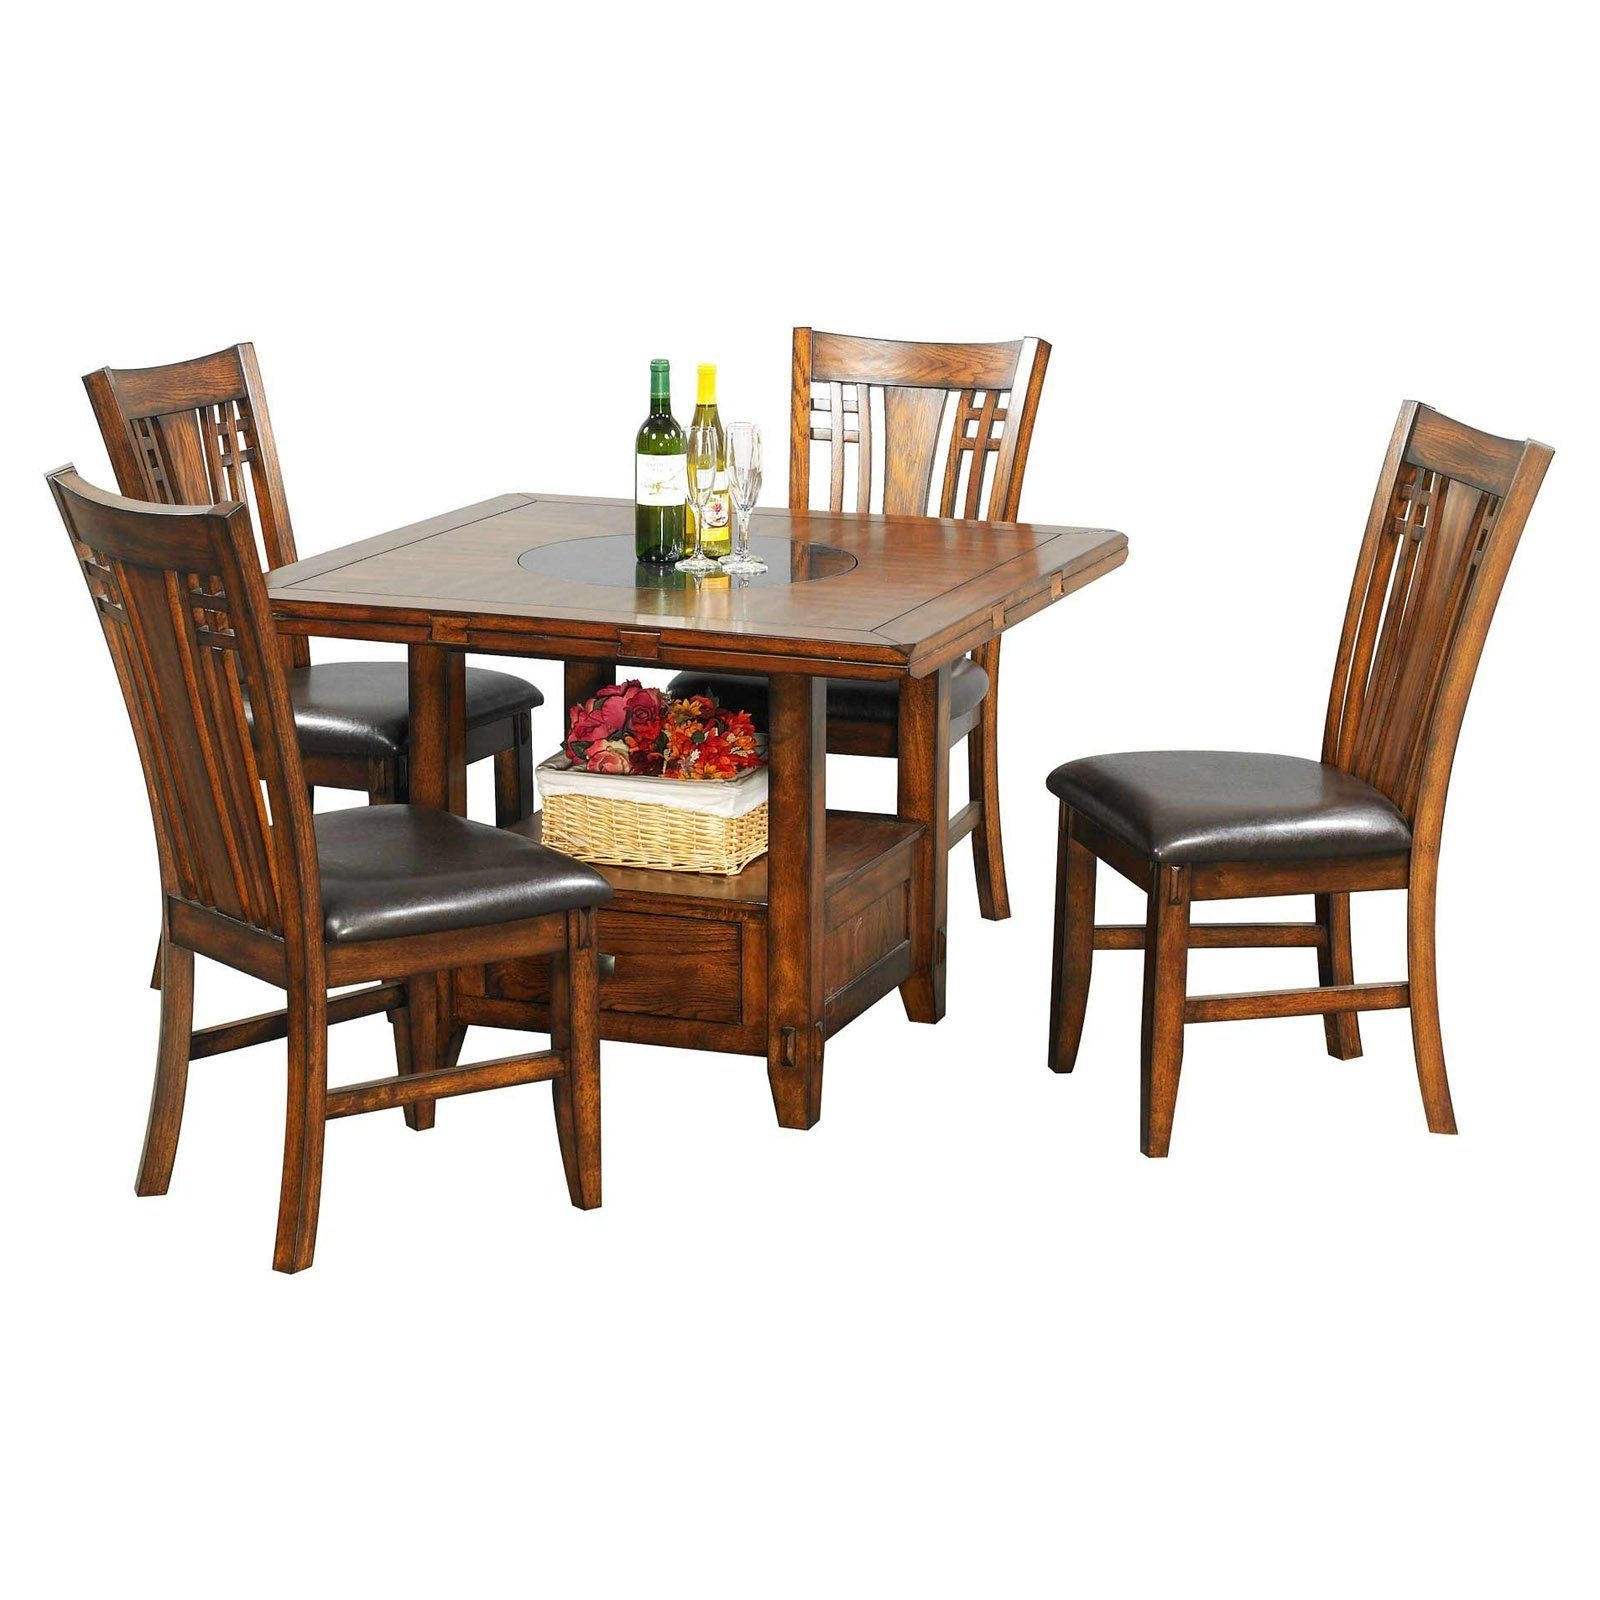 Preferred Winners Only Zahara 5 Piece Dining Table Set With Granite Lazy Susan Inside Craftsman 5 Piece Round Dining Sets With Side Chairs (View 16 of 25)